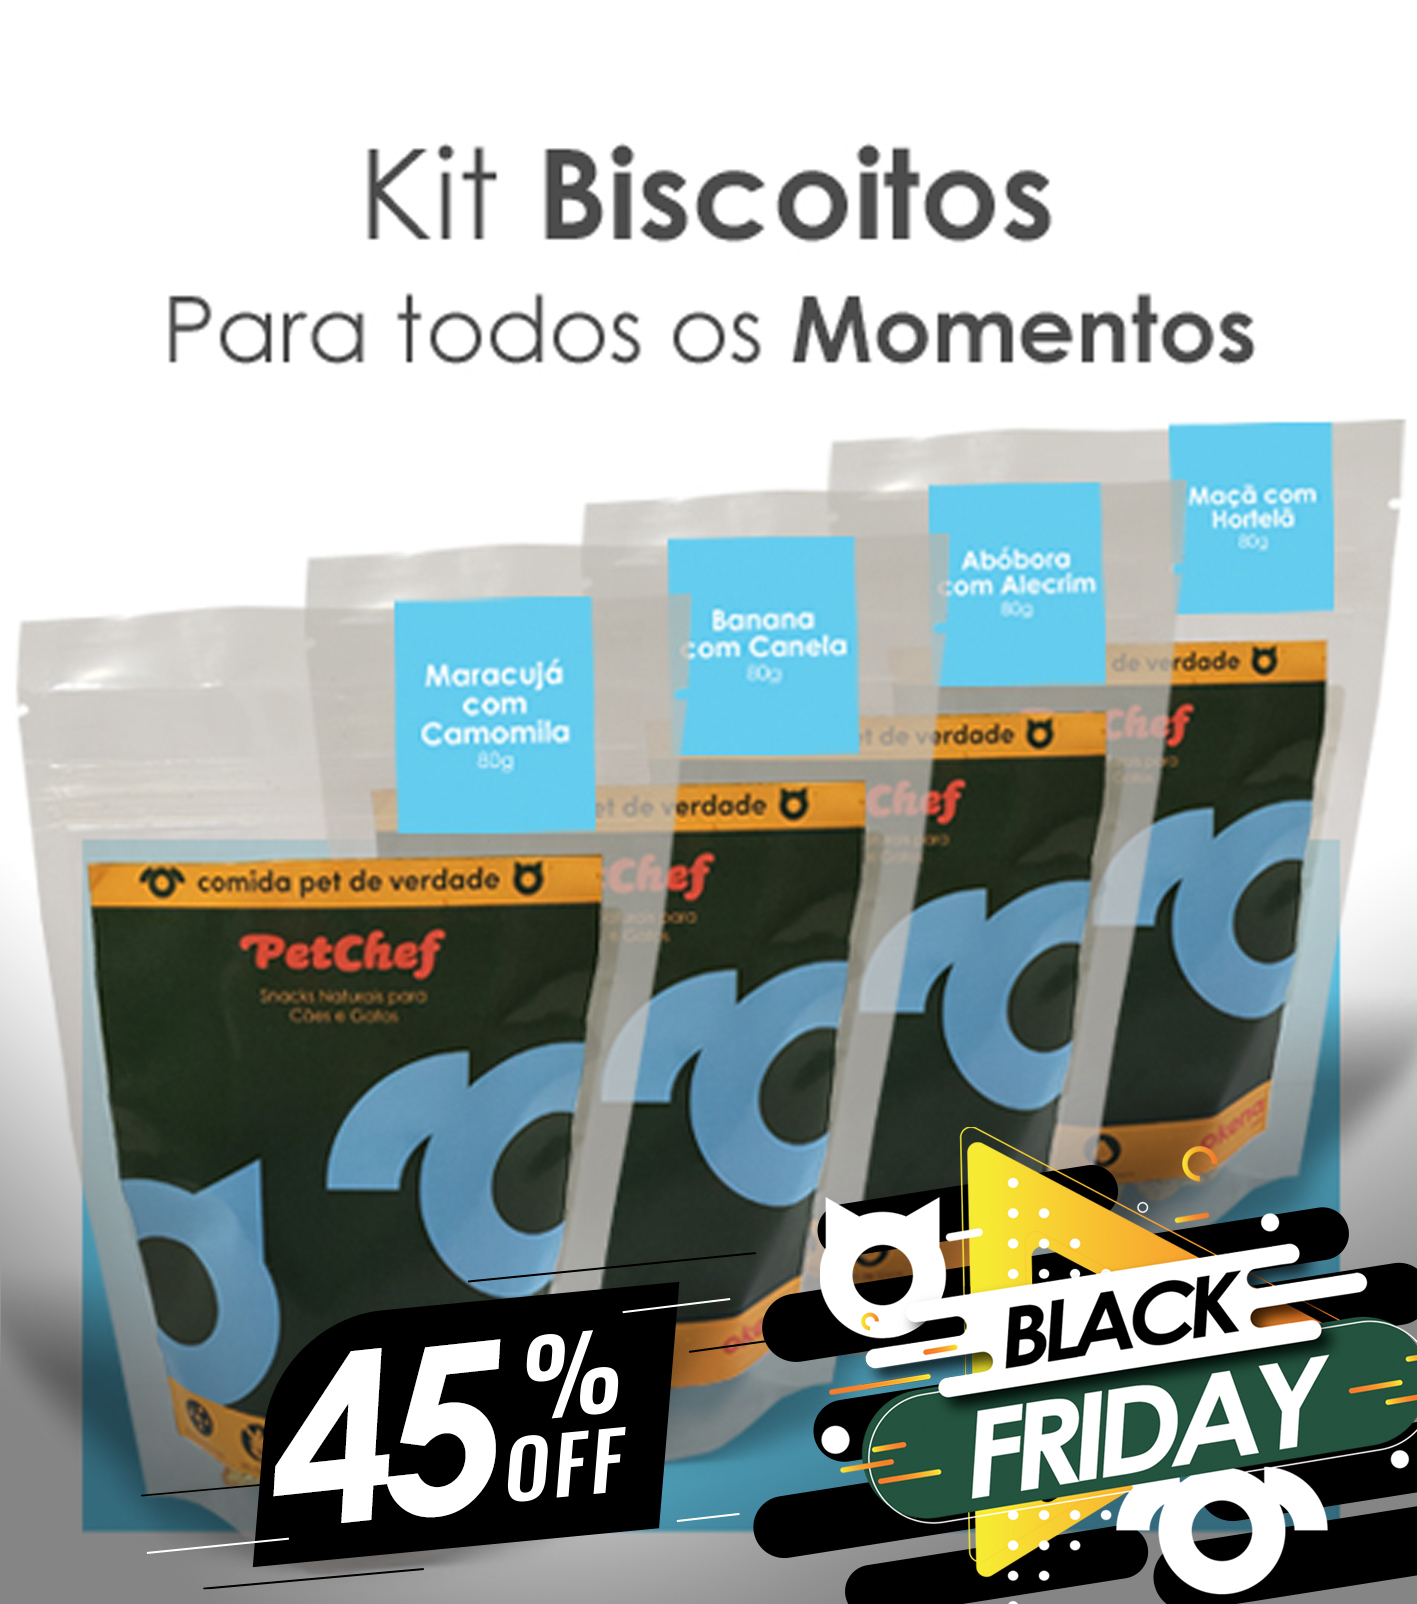 Kit Biscoitos BLACK FRIDAY